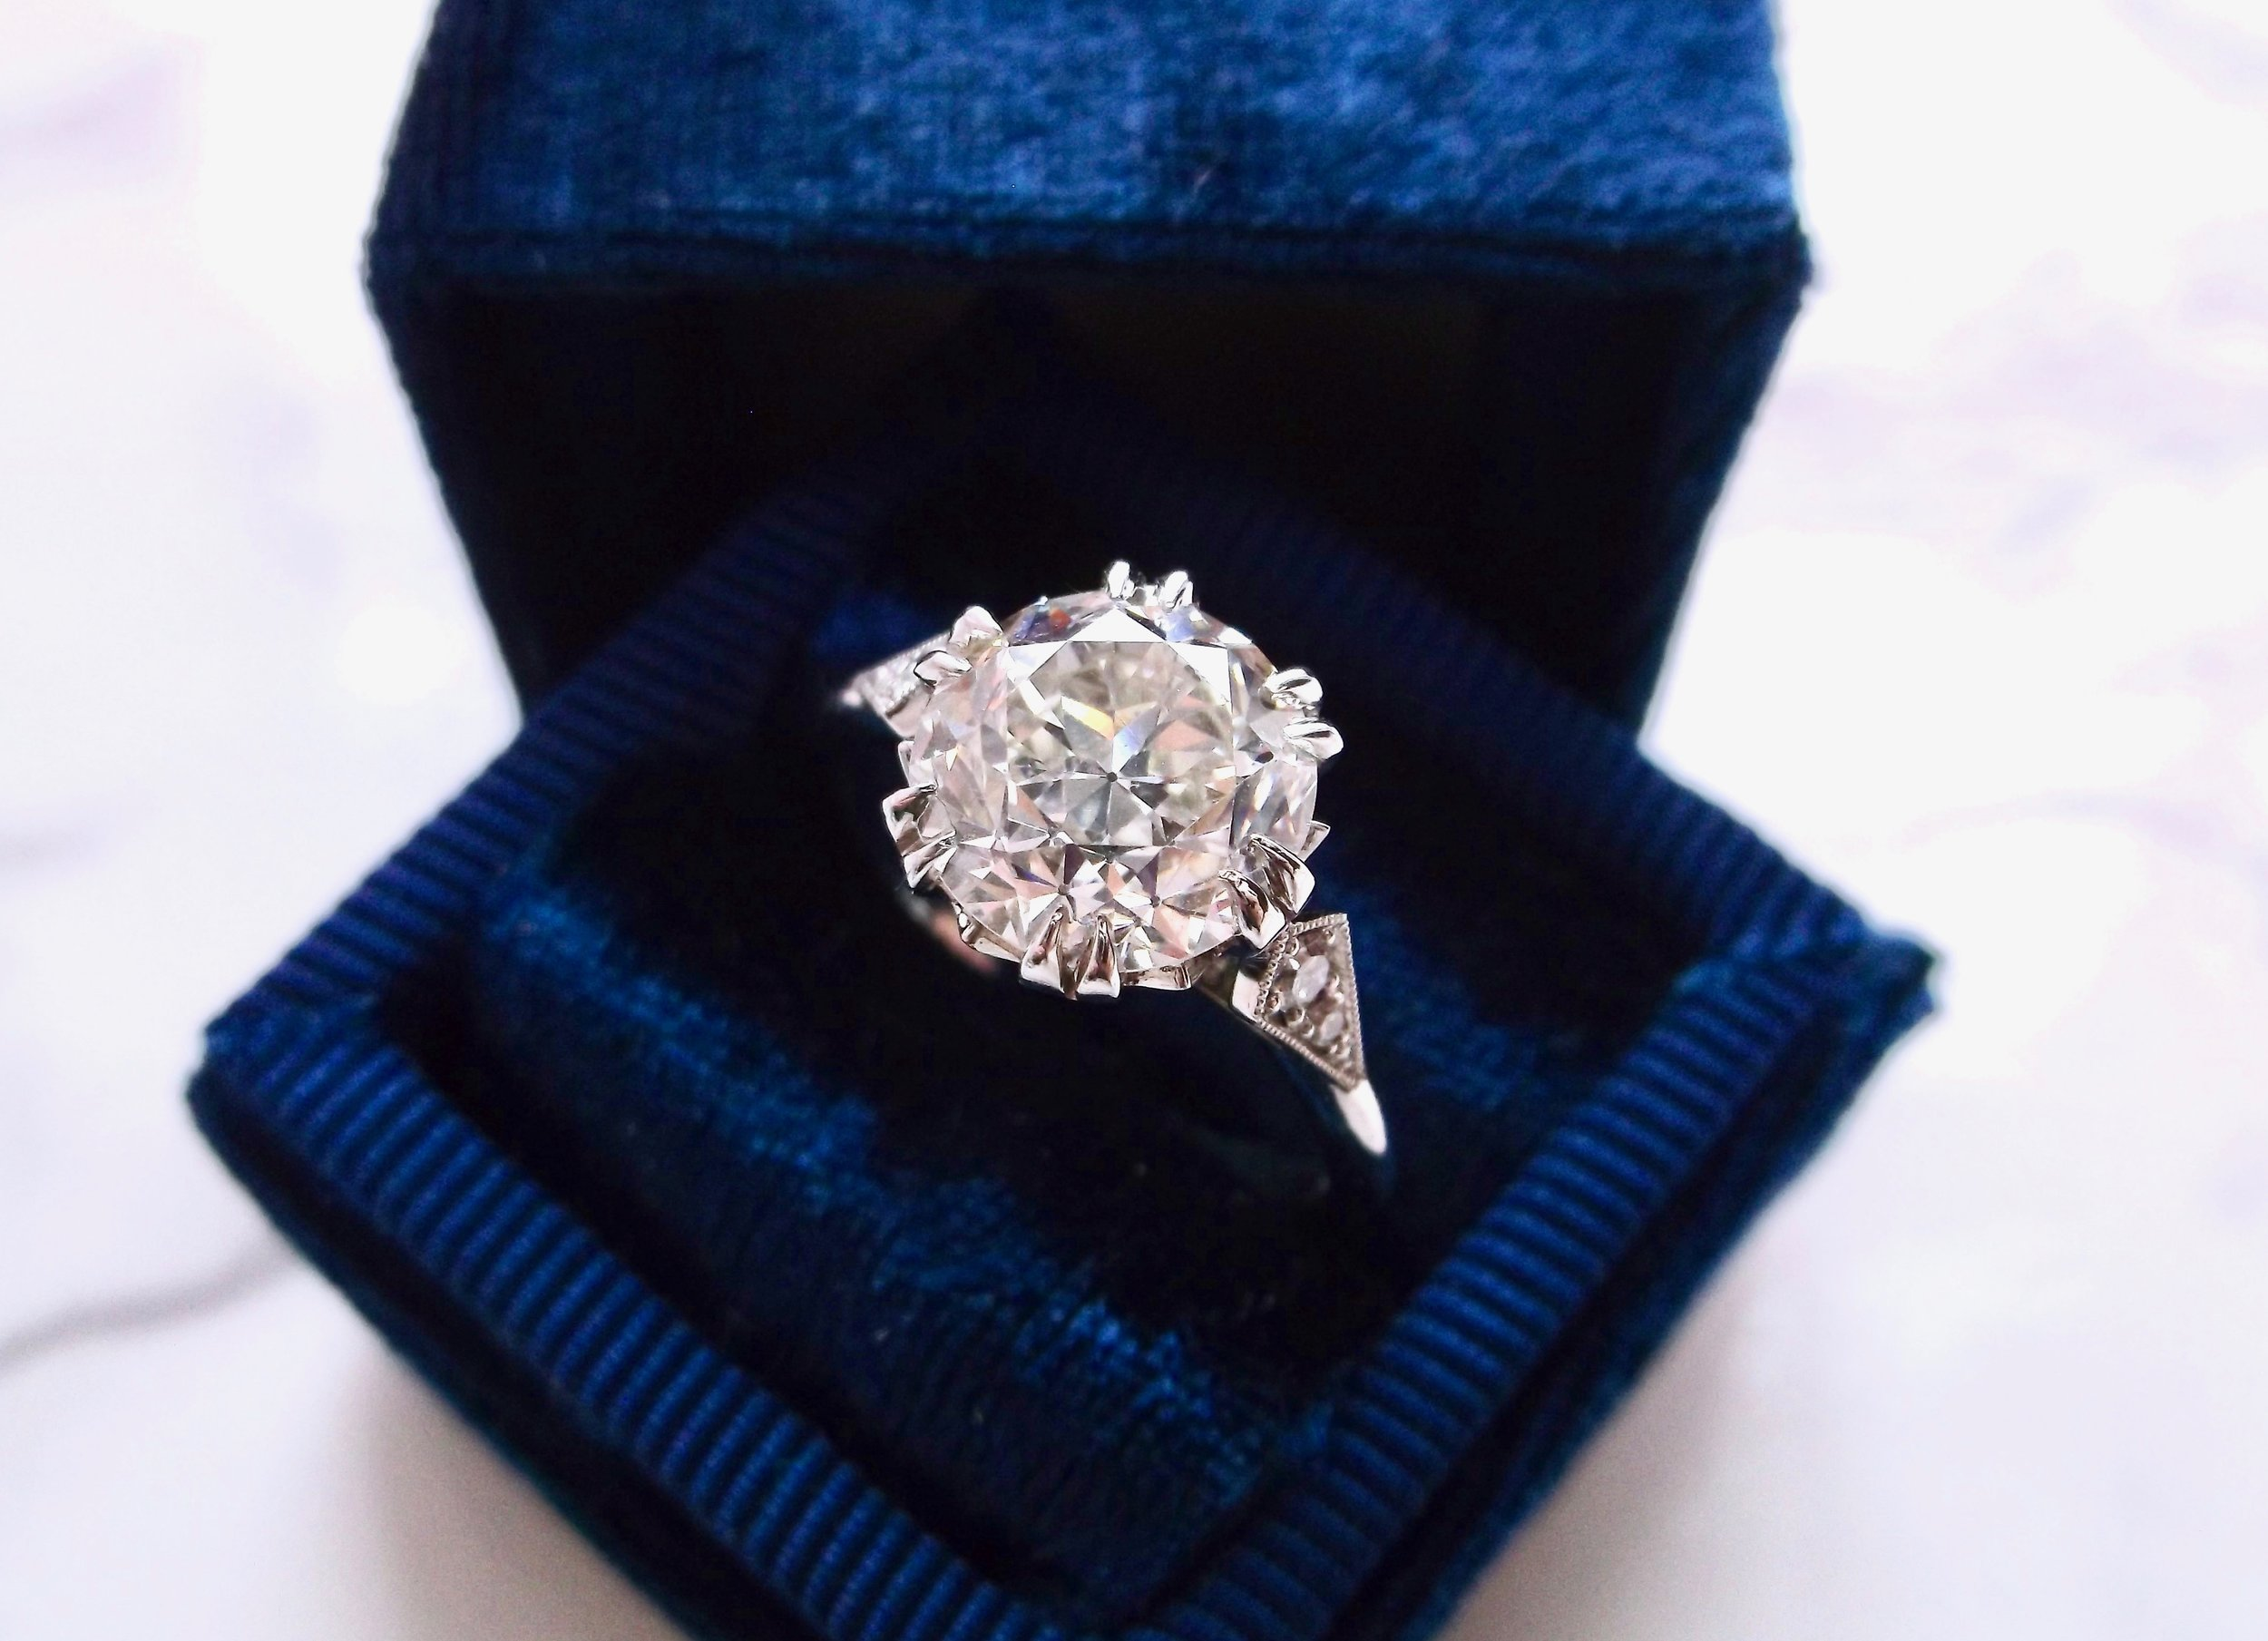 We're back! And ready to kick off 2018 with a big Old European cut diamond! 2.88 carats to be exact! Shop this showstopper  HERE .